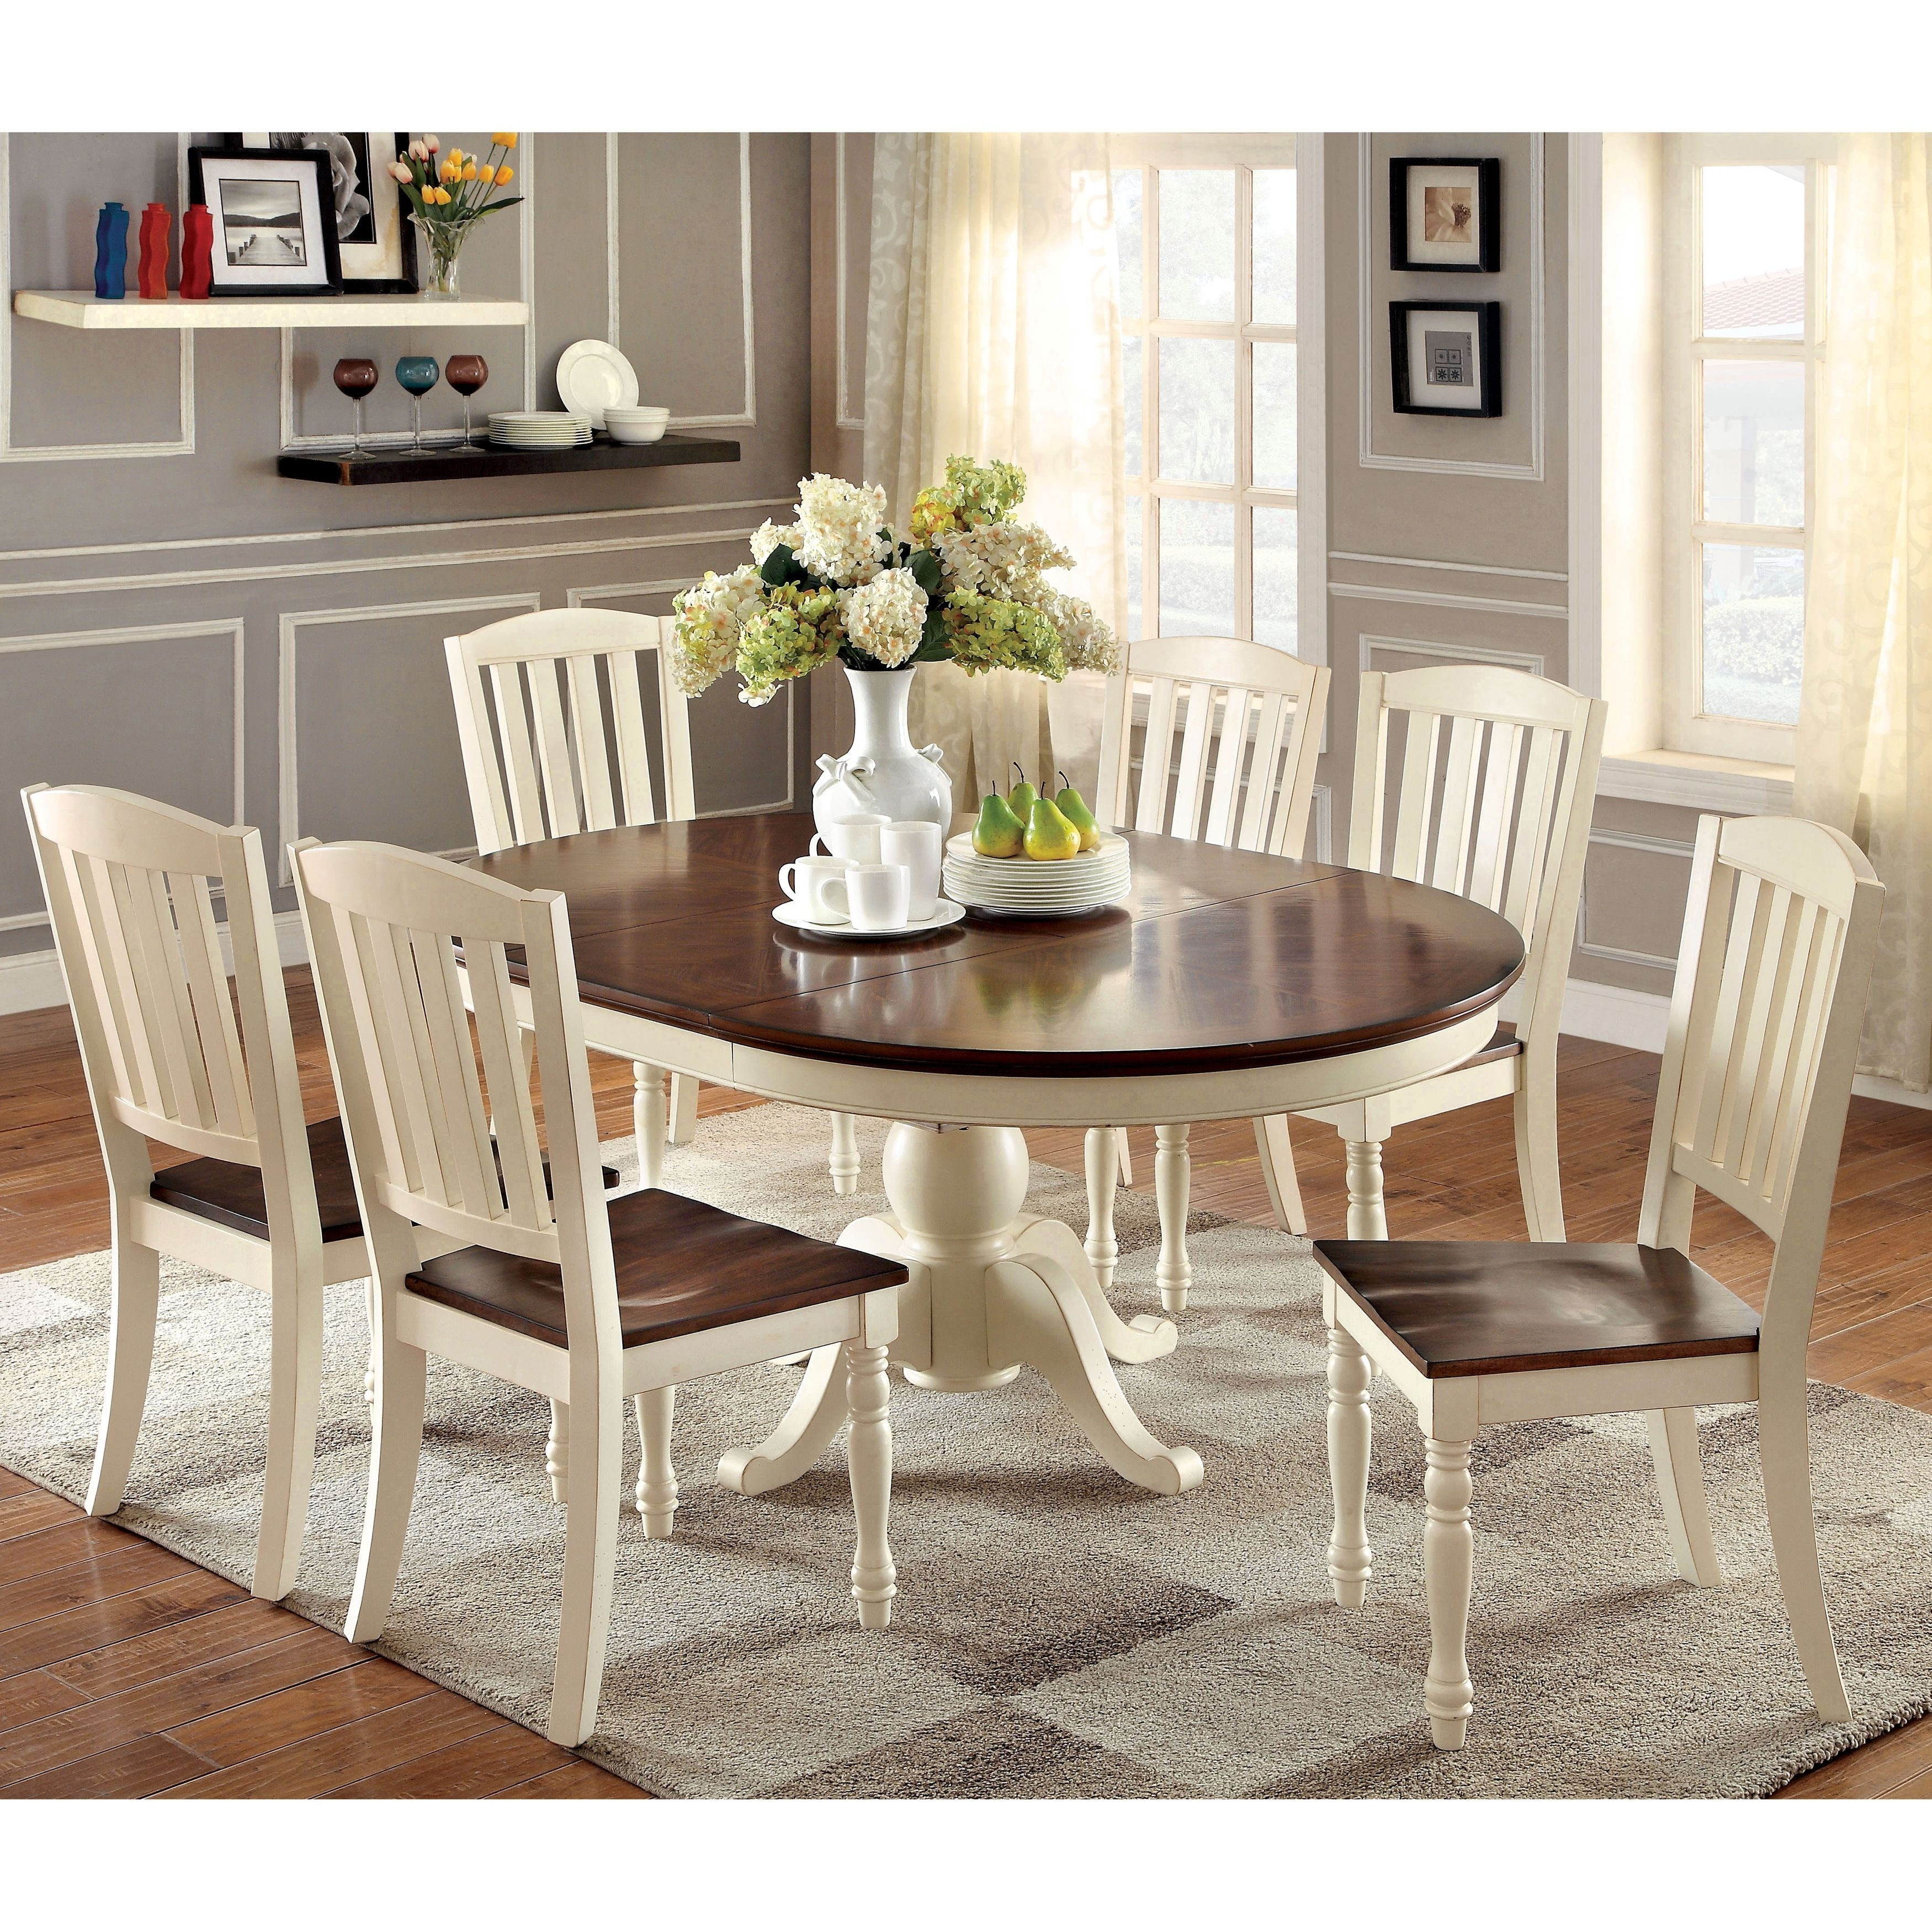 Furniture Of America Bethannie 7 Piece Cottage Style Oval Dining Set Throughout Most Up To Date Market 7 Piece Dining Sets With Host And Side Chairs (View 3 of 20)